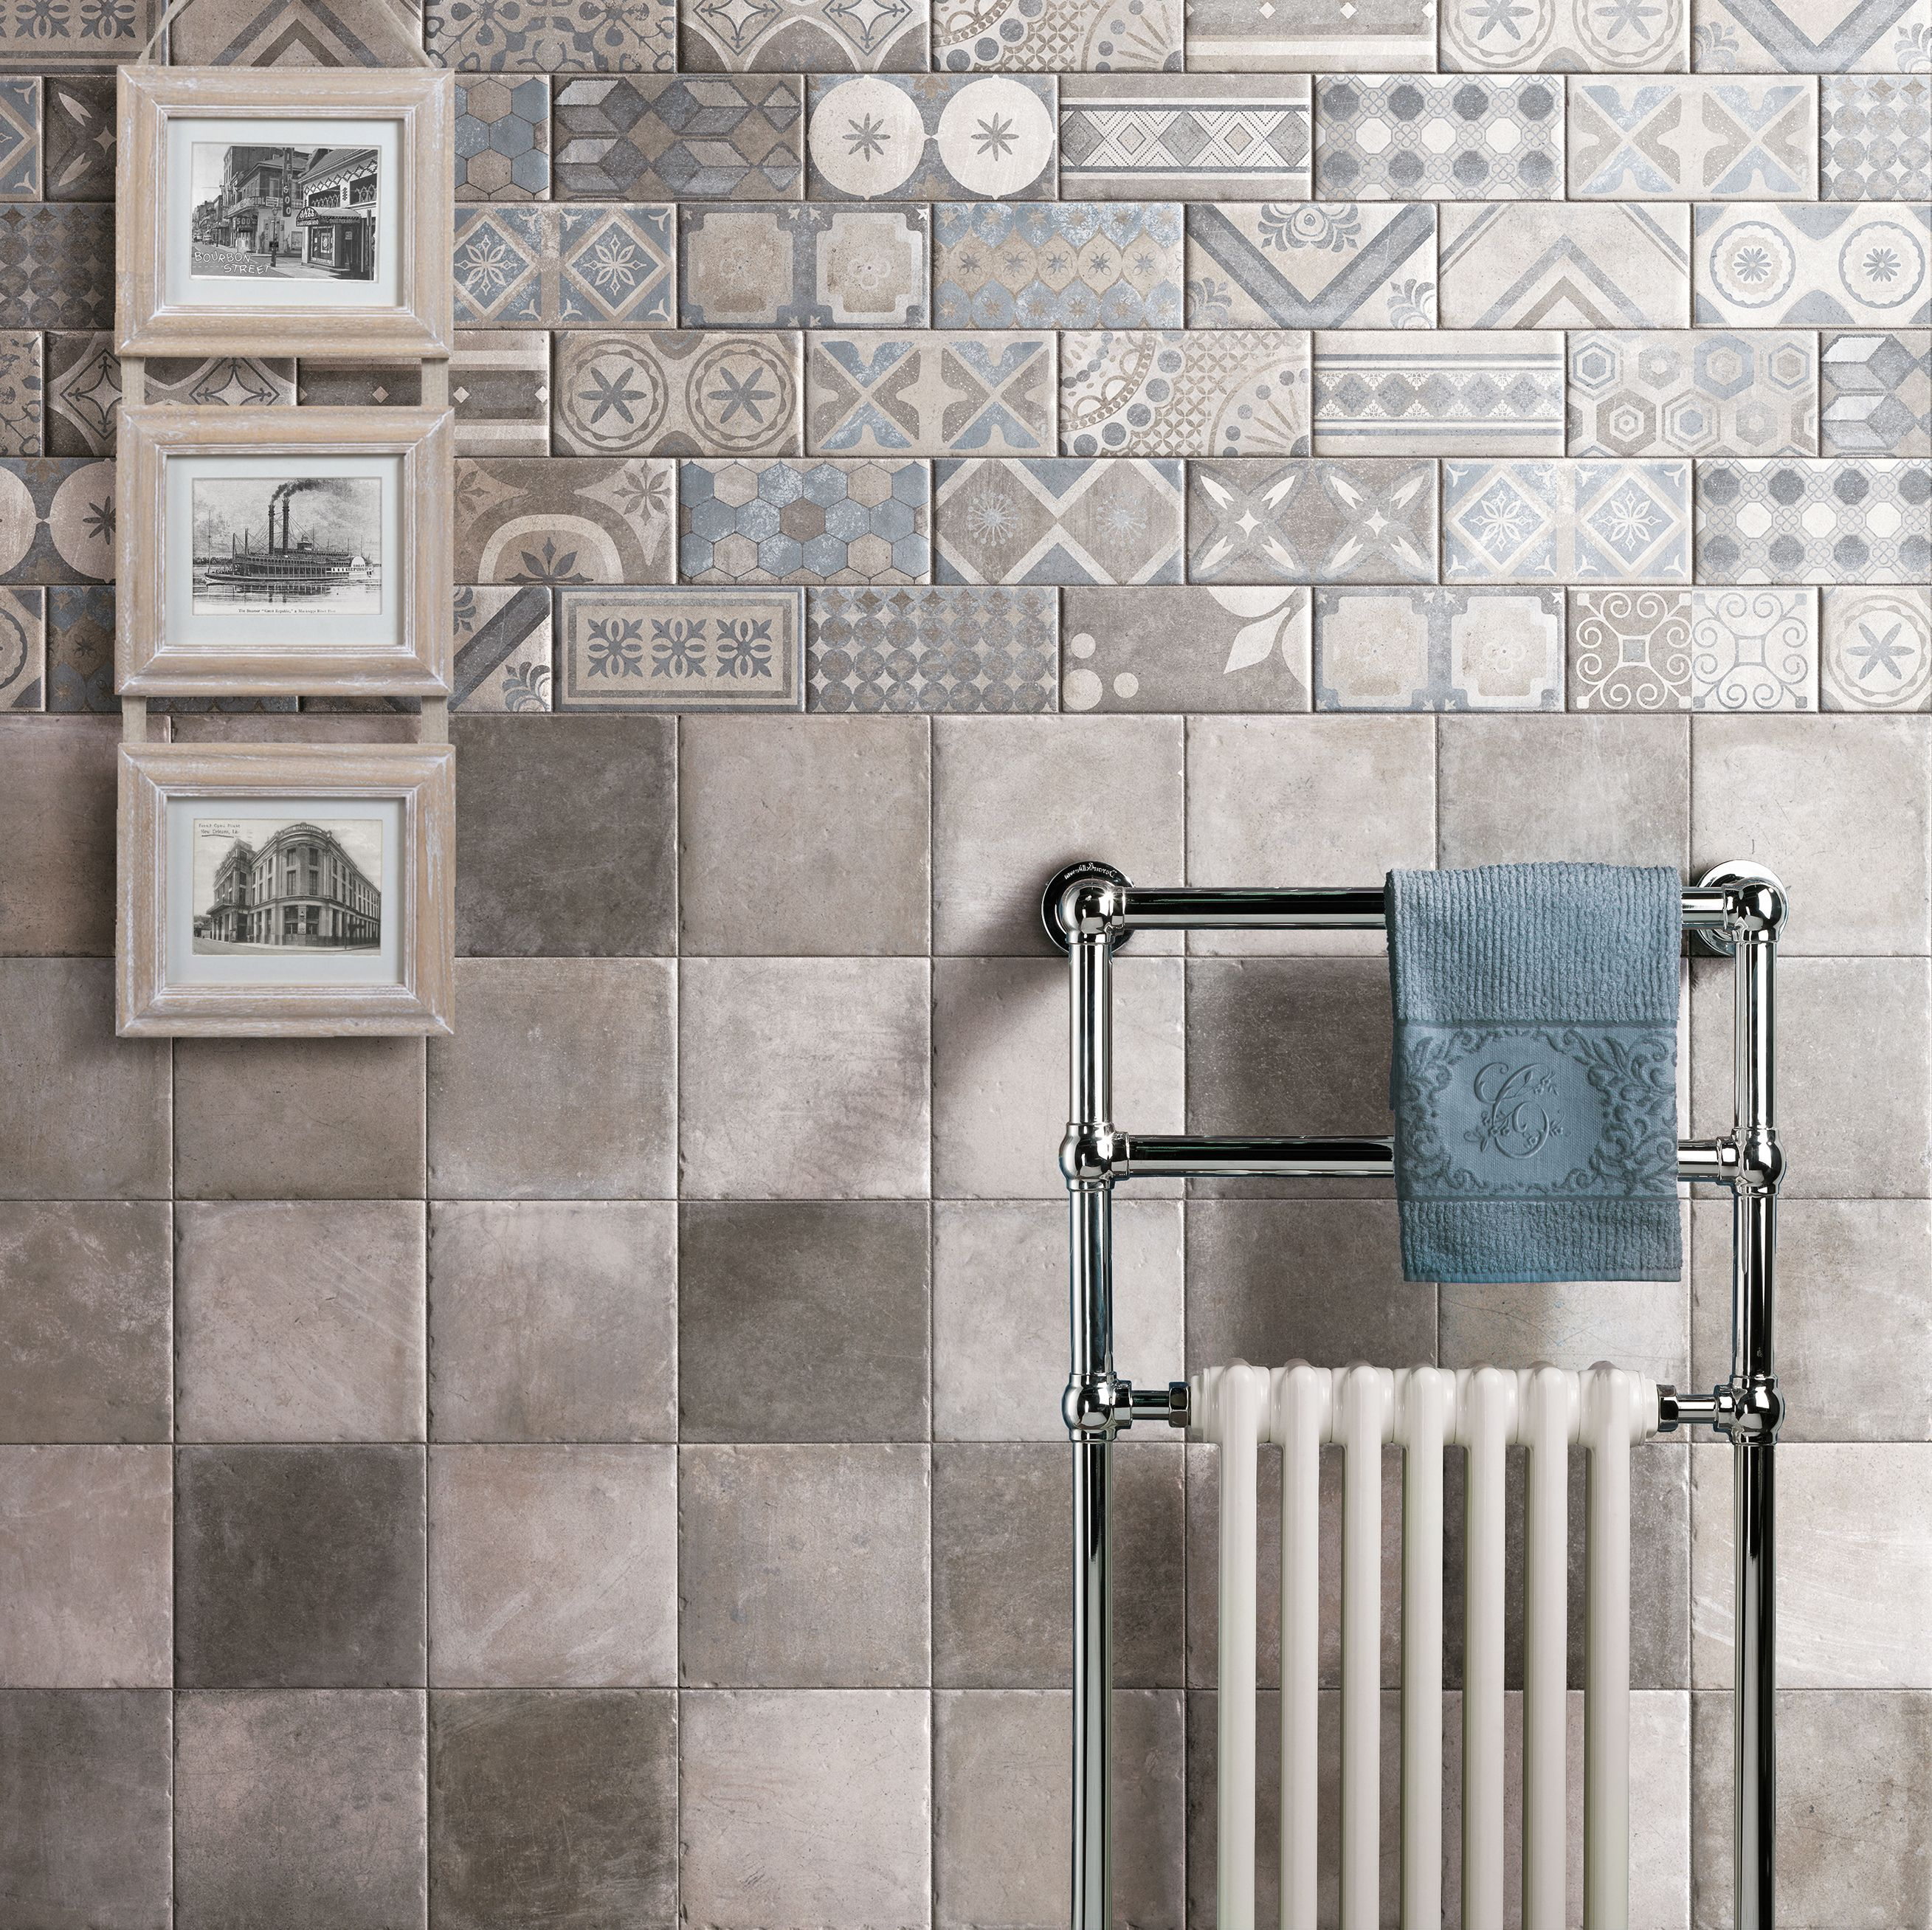 Pin Di Cir Manifatture Ceramiche Su Brick Time Pinterest